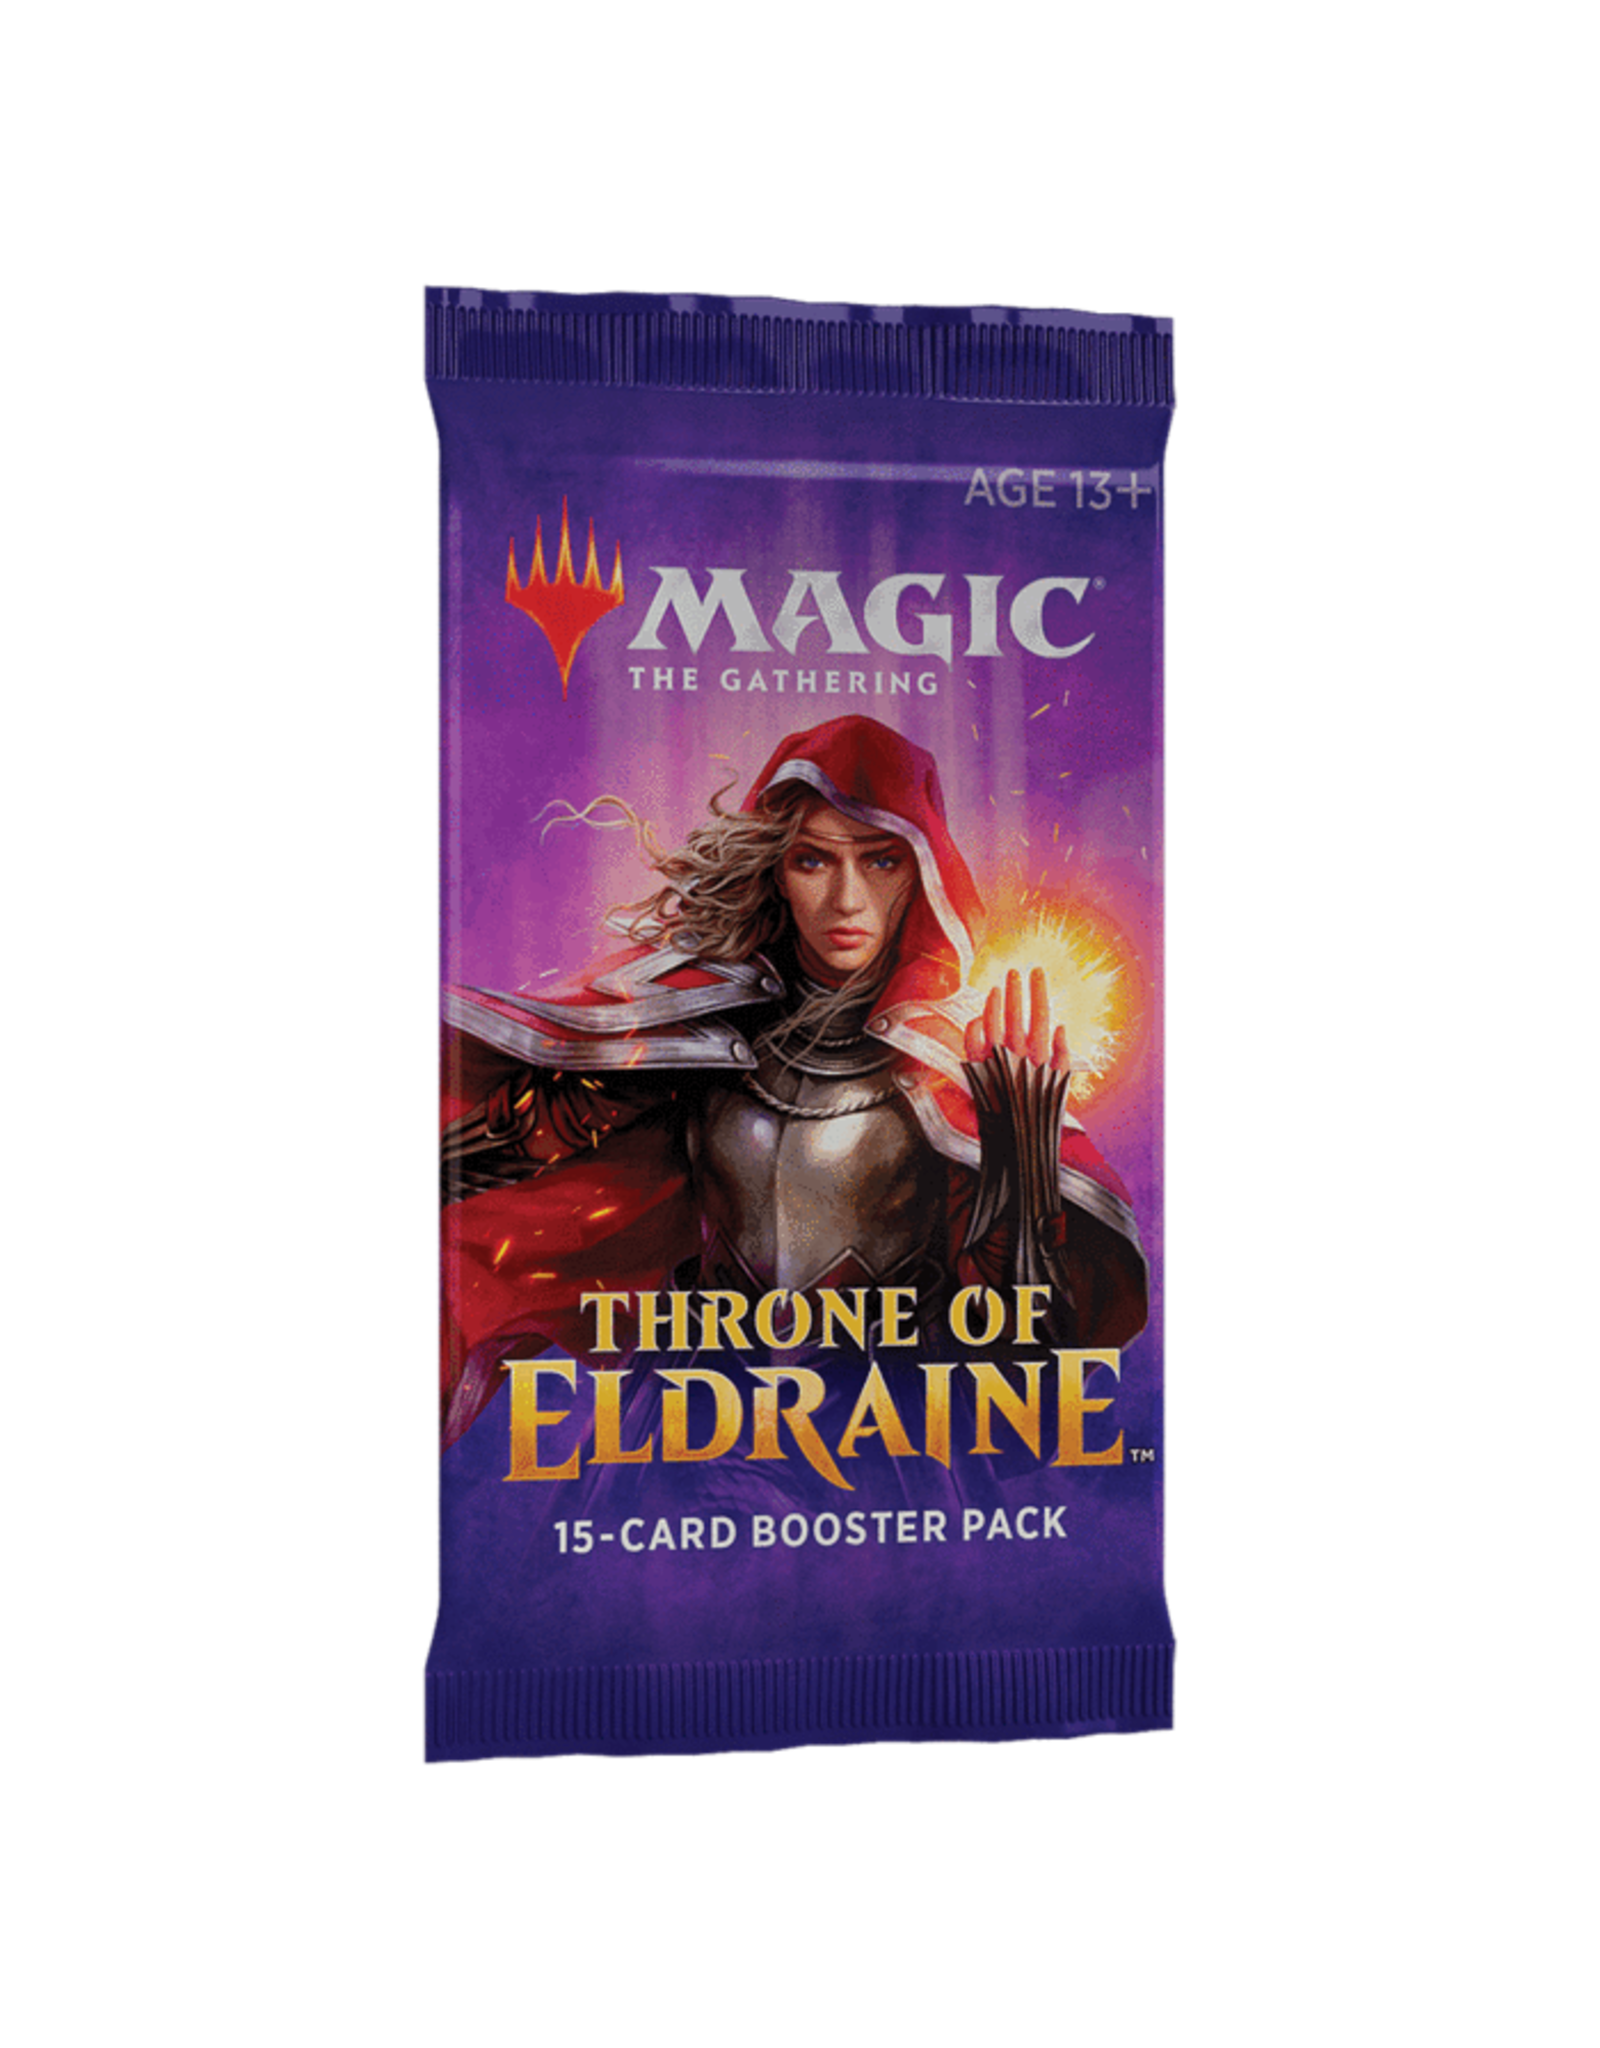 Magic: The Gathering Magic: The Gathering - Throne of Eldraine Draft Booster Pack